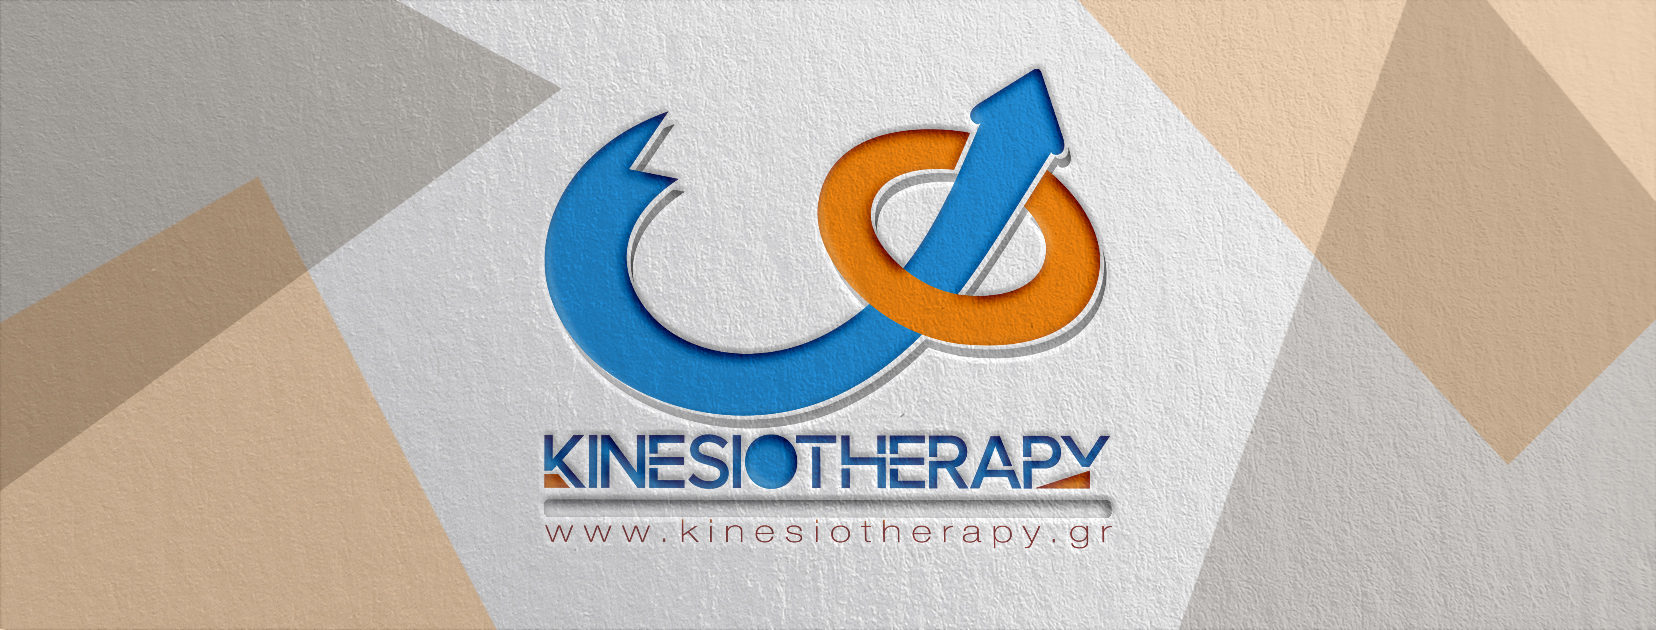 kinesiotherapy facebook new copy